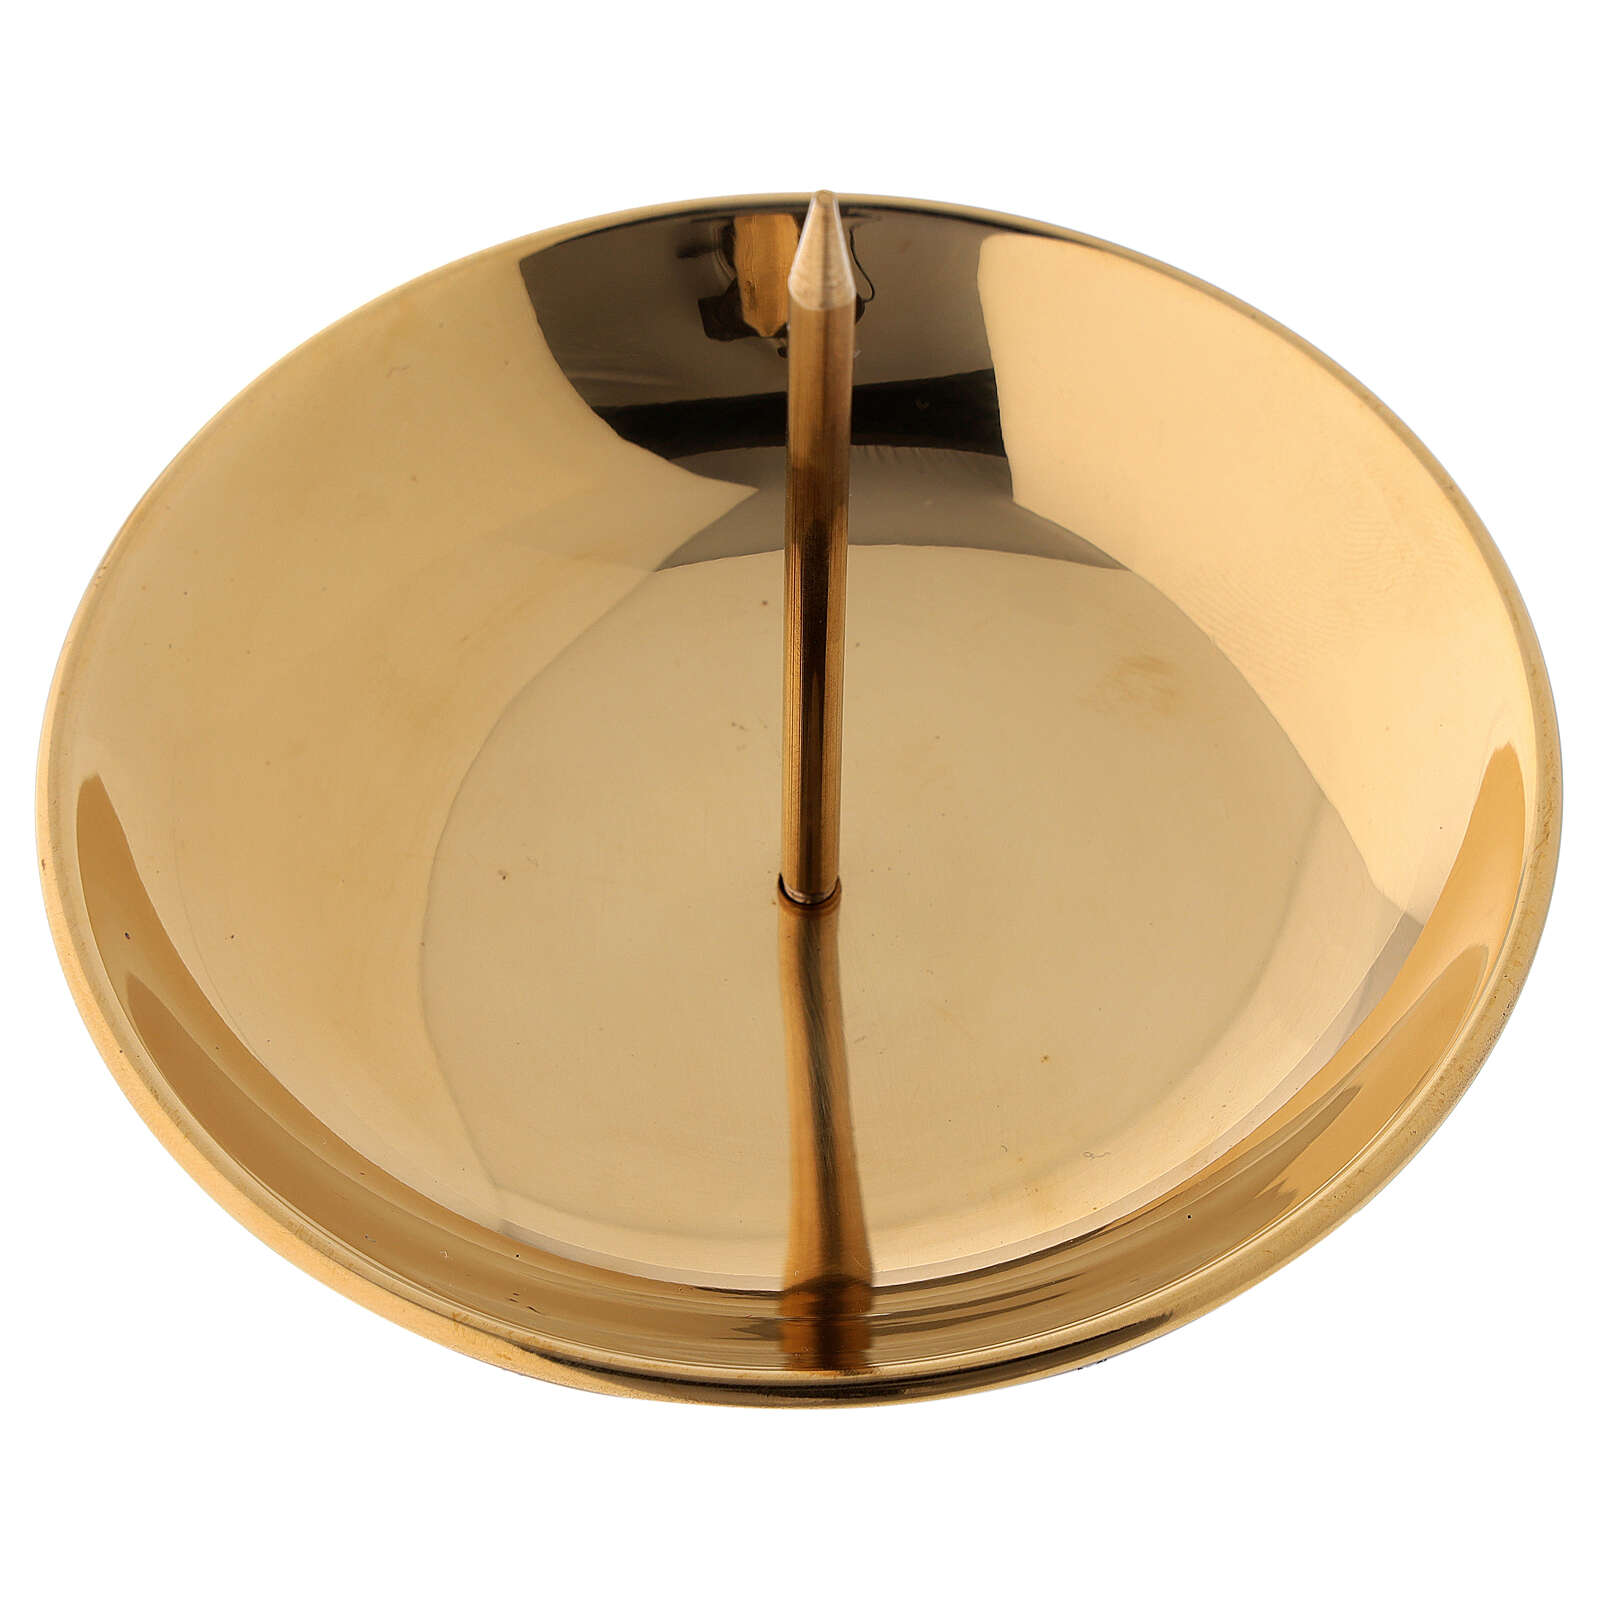 Advent candle holder shiny golden brass with jag diameter 10 cm 3